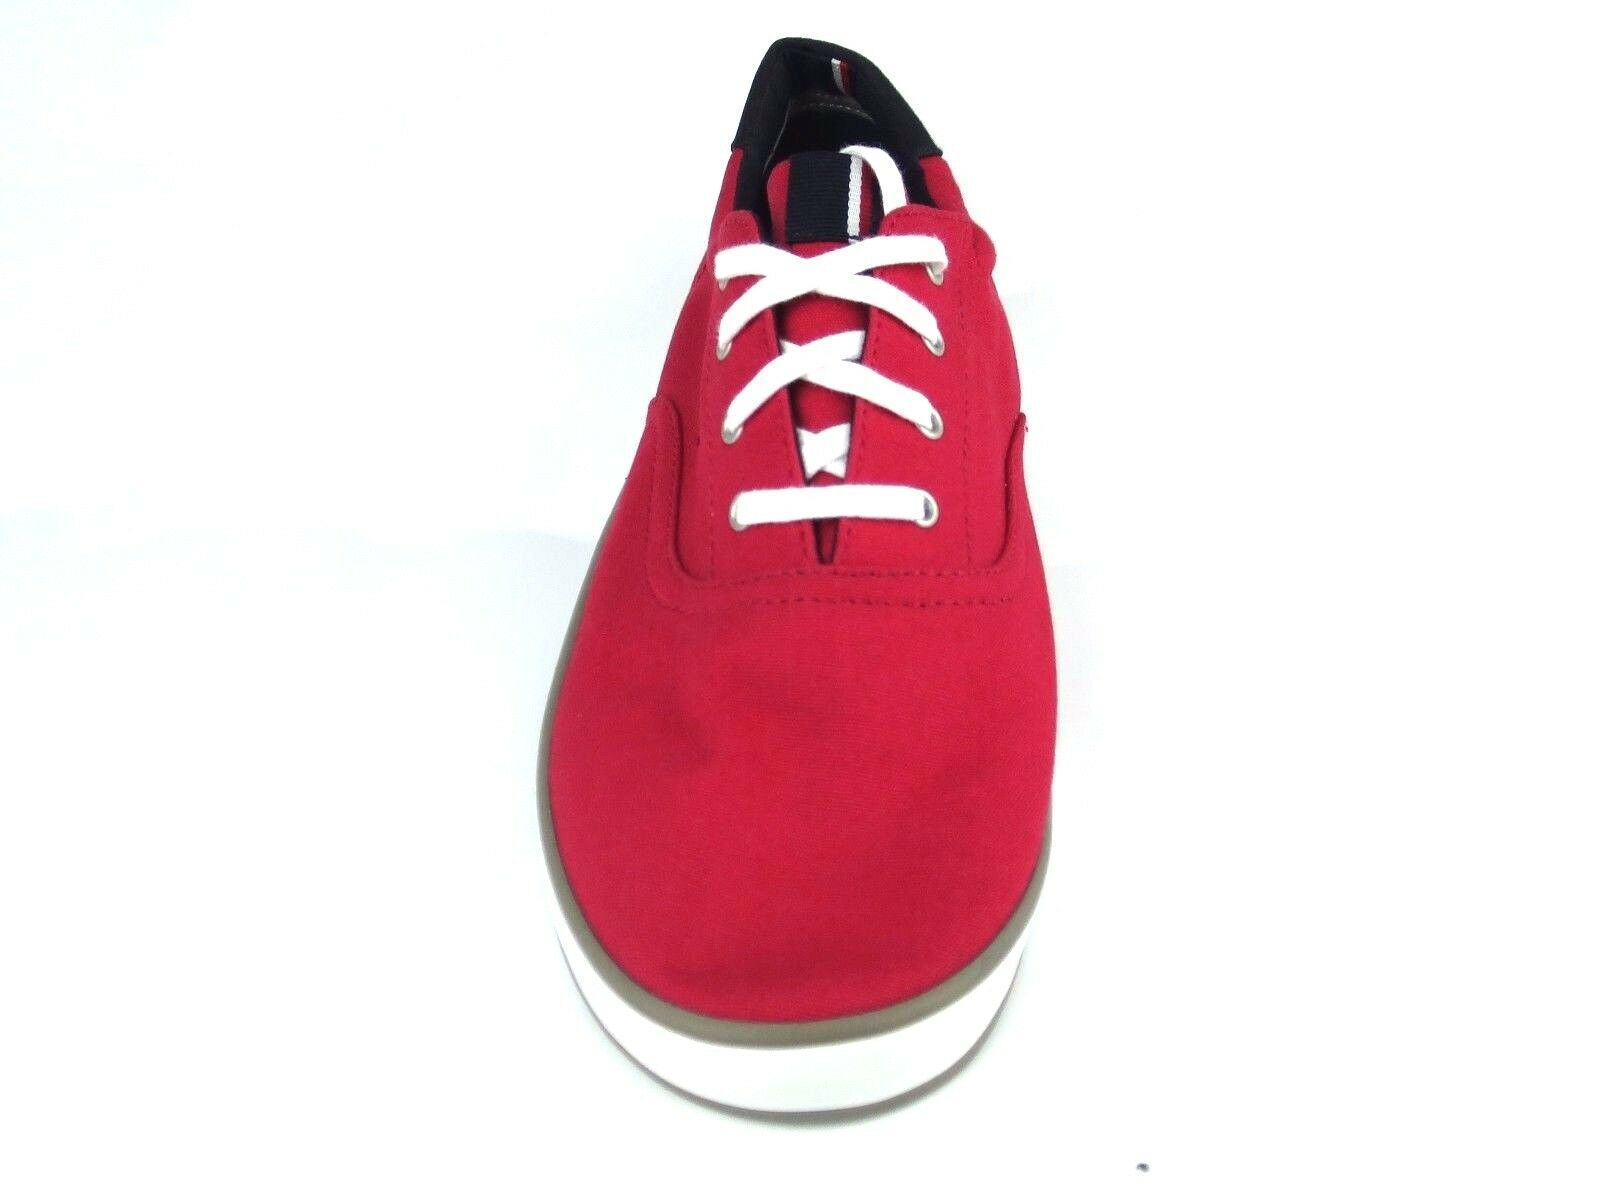 Tommy Hilfiger Sneakers TH Canvas ARLOW 3D Sneaker Herren Canvas TH Rot ROT NEW NEU 1145 2109ae